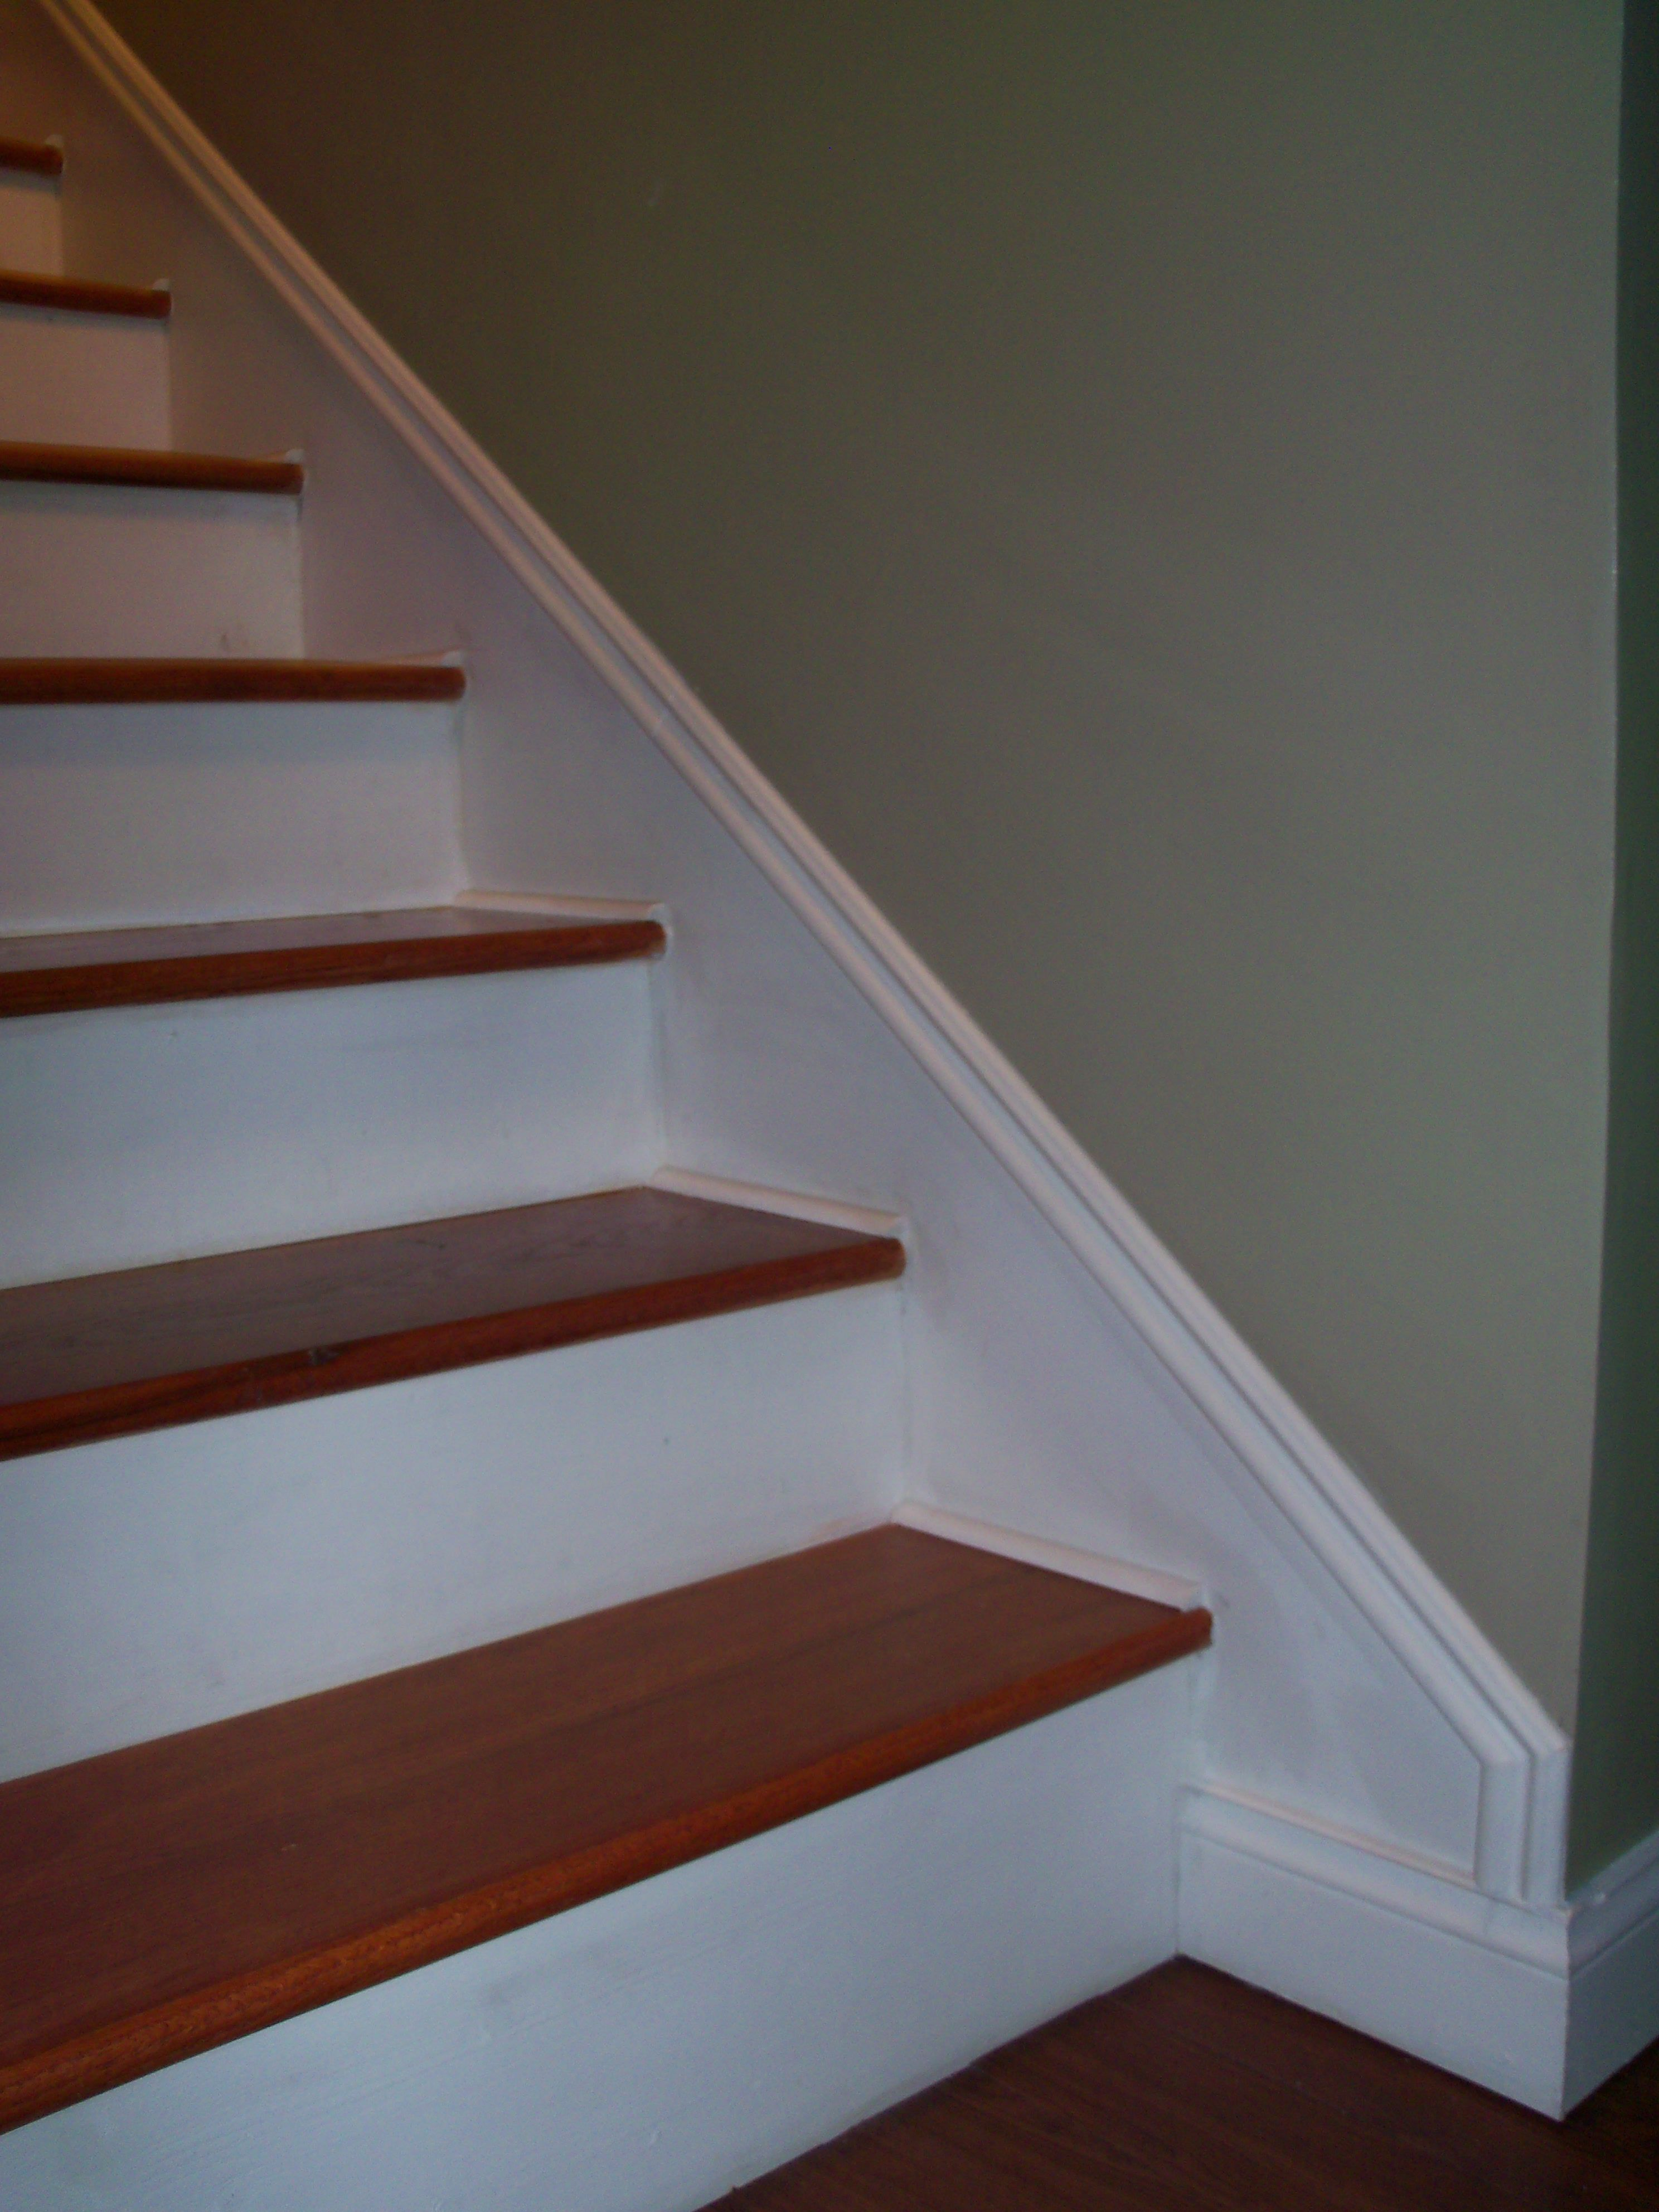 Stair skirtboard - Faux Baseboardbrought To You By Lowe S Creative Ideas Create The Look Of Custom Trim Work With This Simple Faux Baseboard Project It S An Easy Way